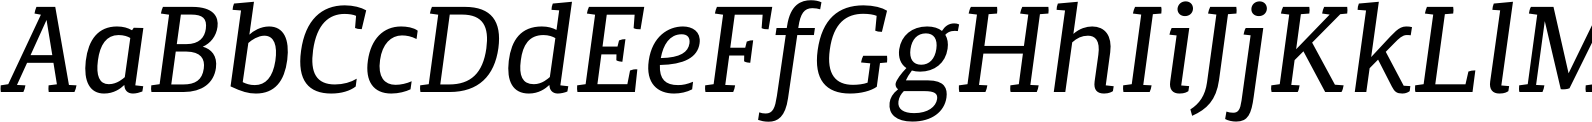 Canberra FY Italic Font